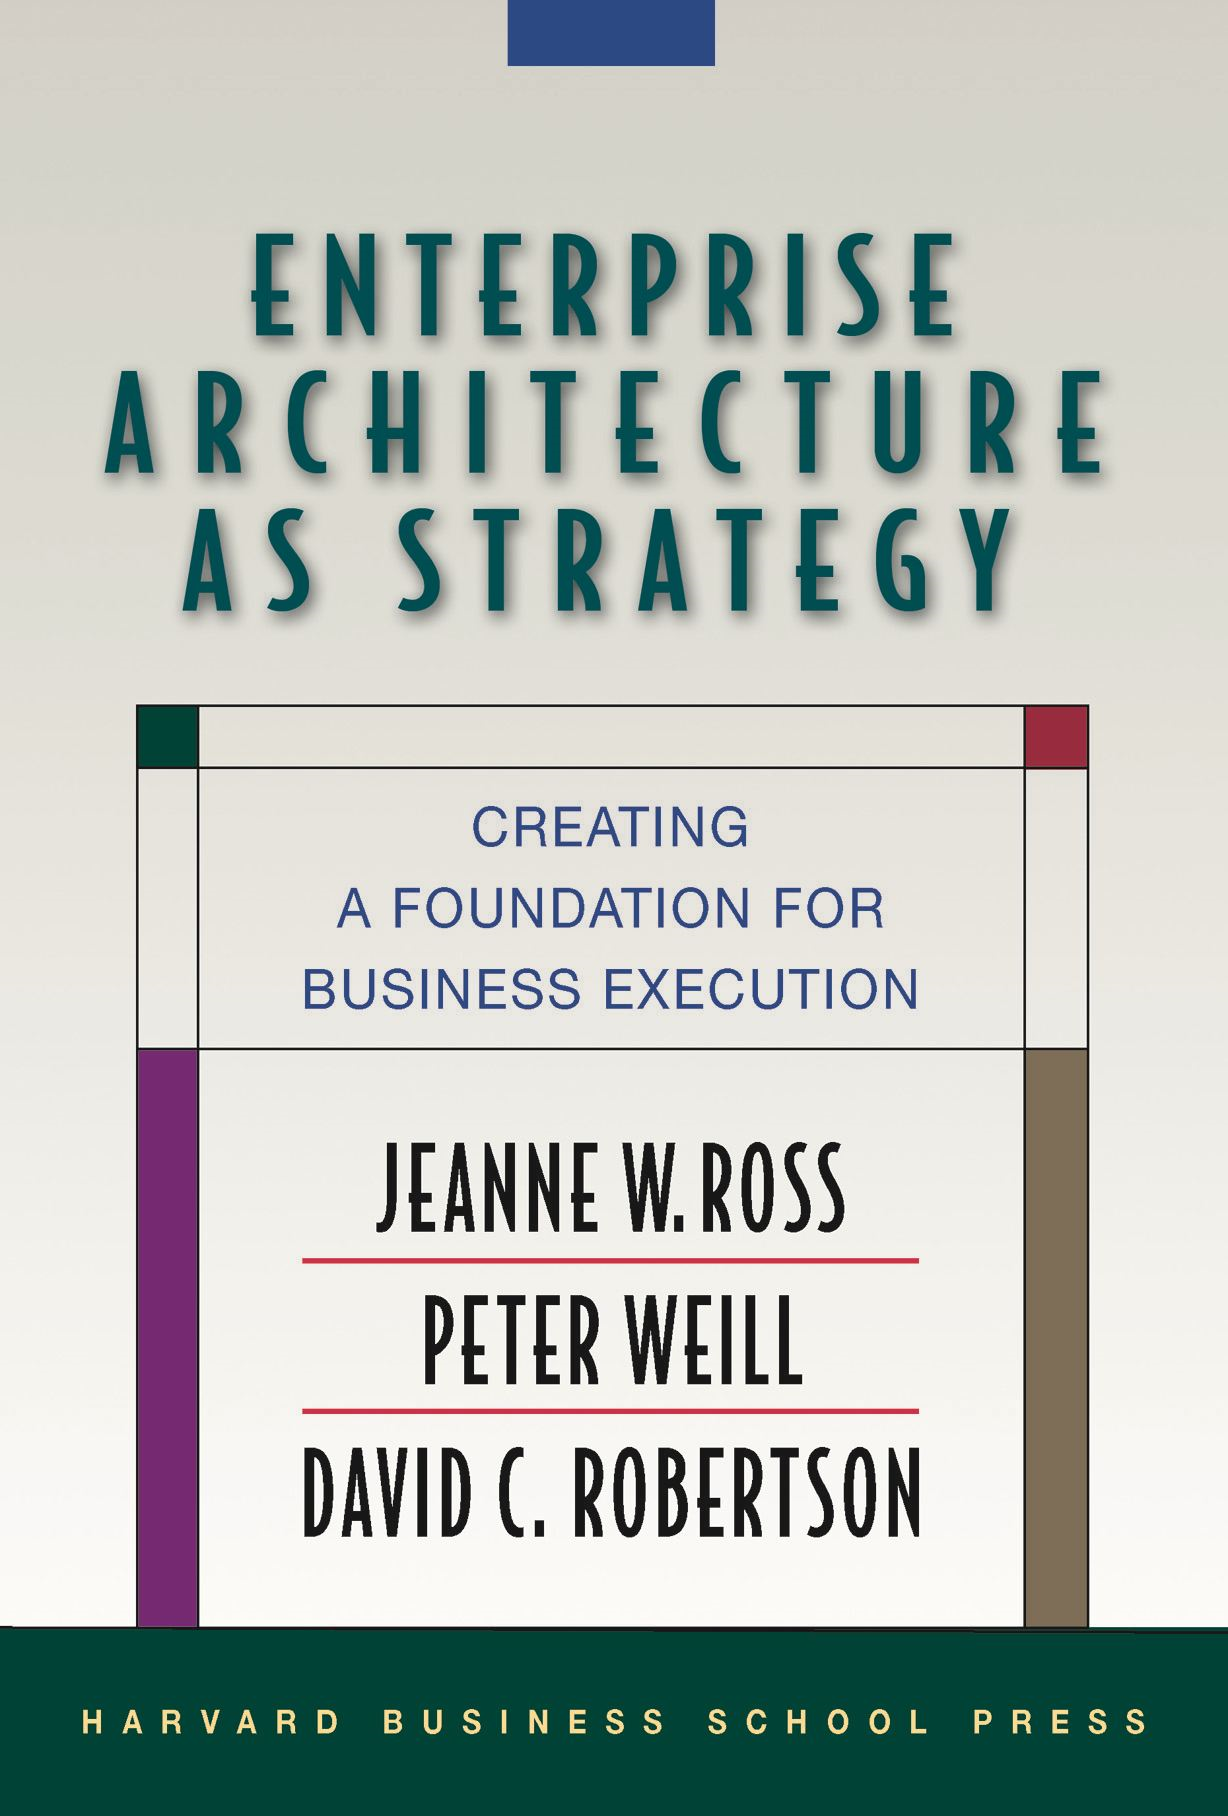 Enterprise Architecture As Strategy By: David Robertson,Jeanne W. Ross,Peter Weill